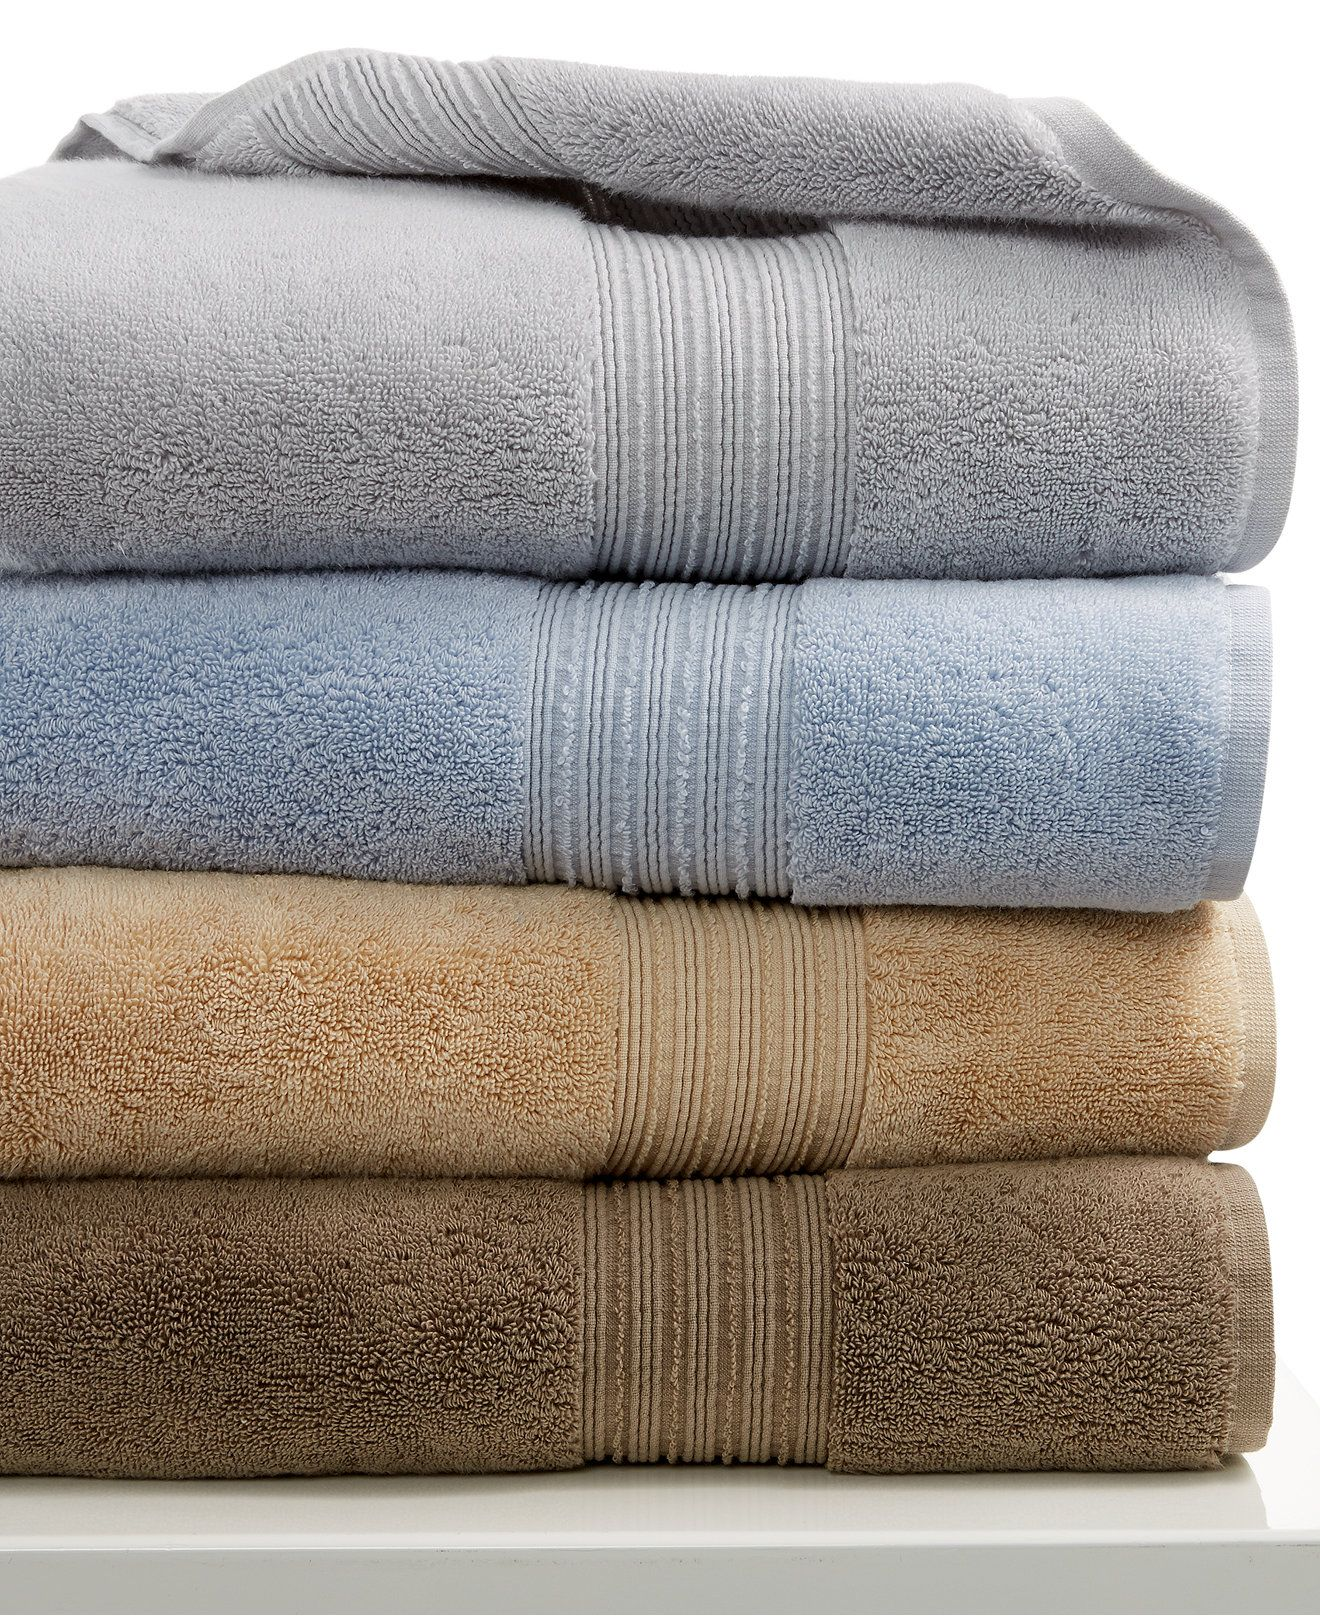 Macys Bath Towels Beauteous Turkish Bath Towel Collection 100% Turkish Cotton Created For Design Inspiration